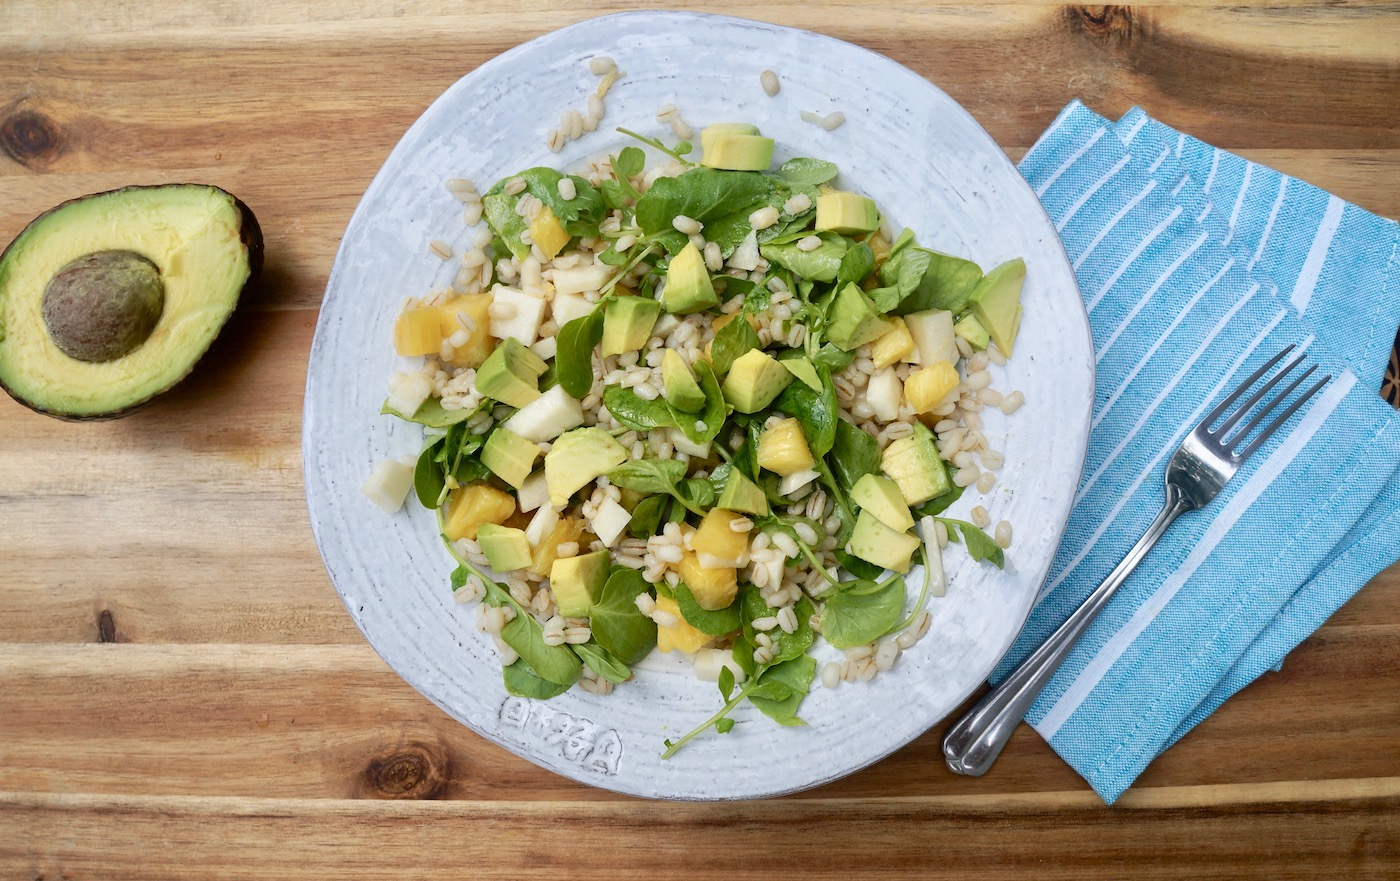 Barley Pineapple Jicama Salad, a recipe from our book